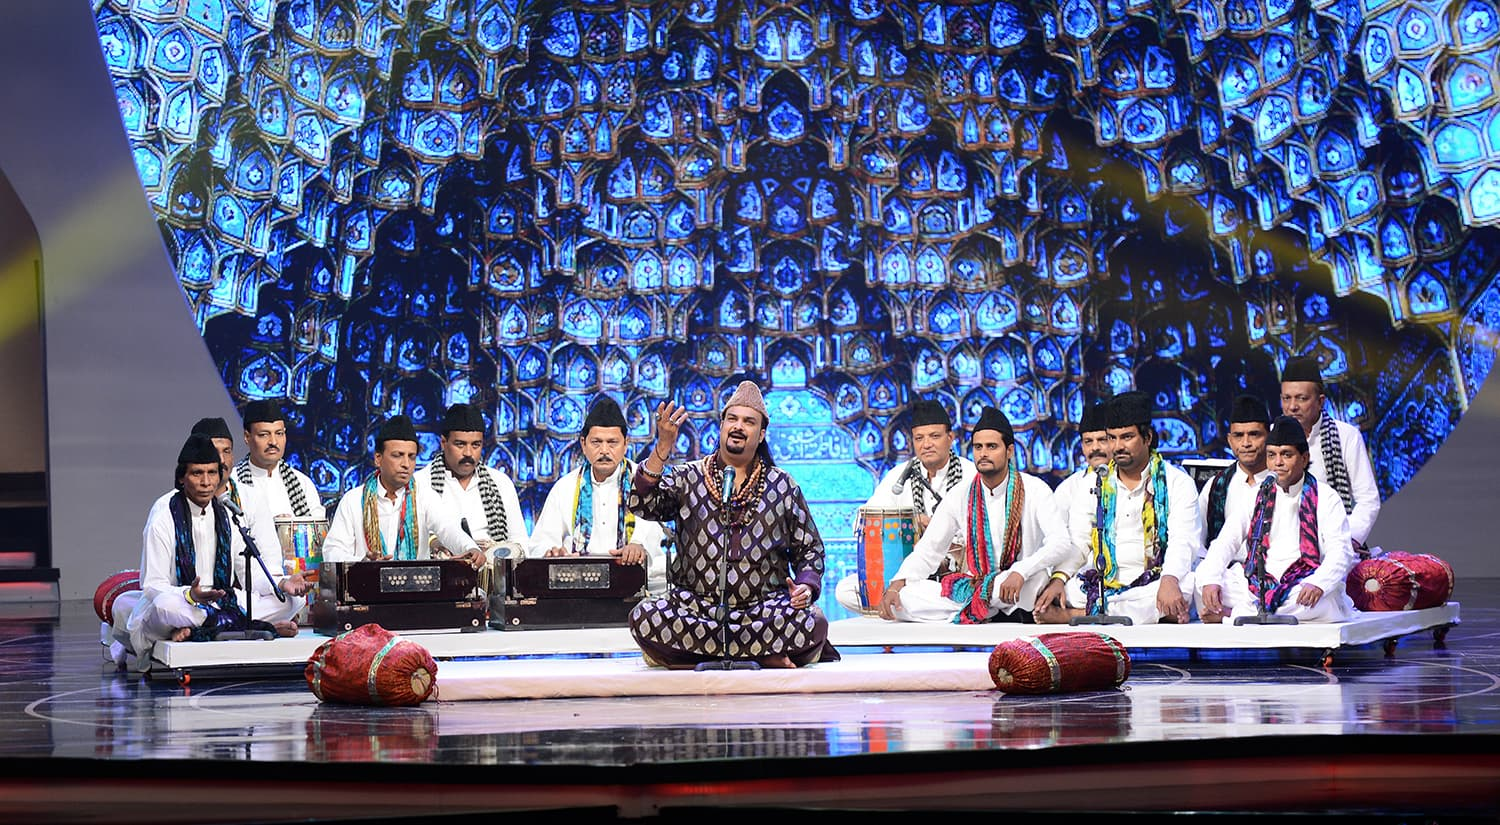 The night began on a grand note with Amjad Sabri's power-packed performance of 'Tajdar-e-Haram' - Publicity photo